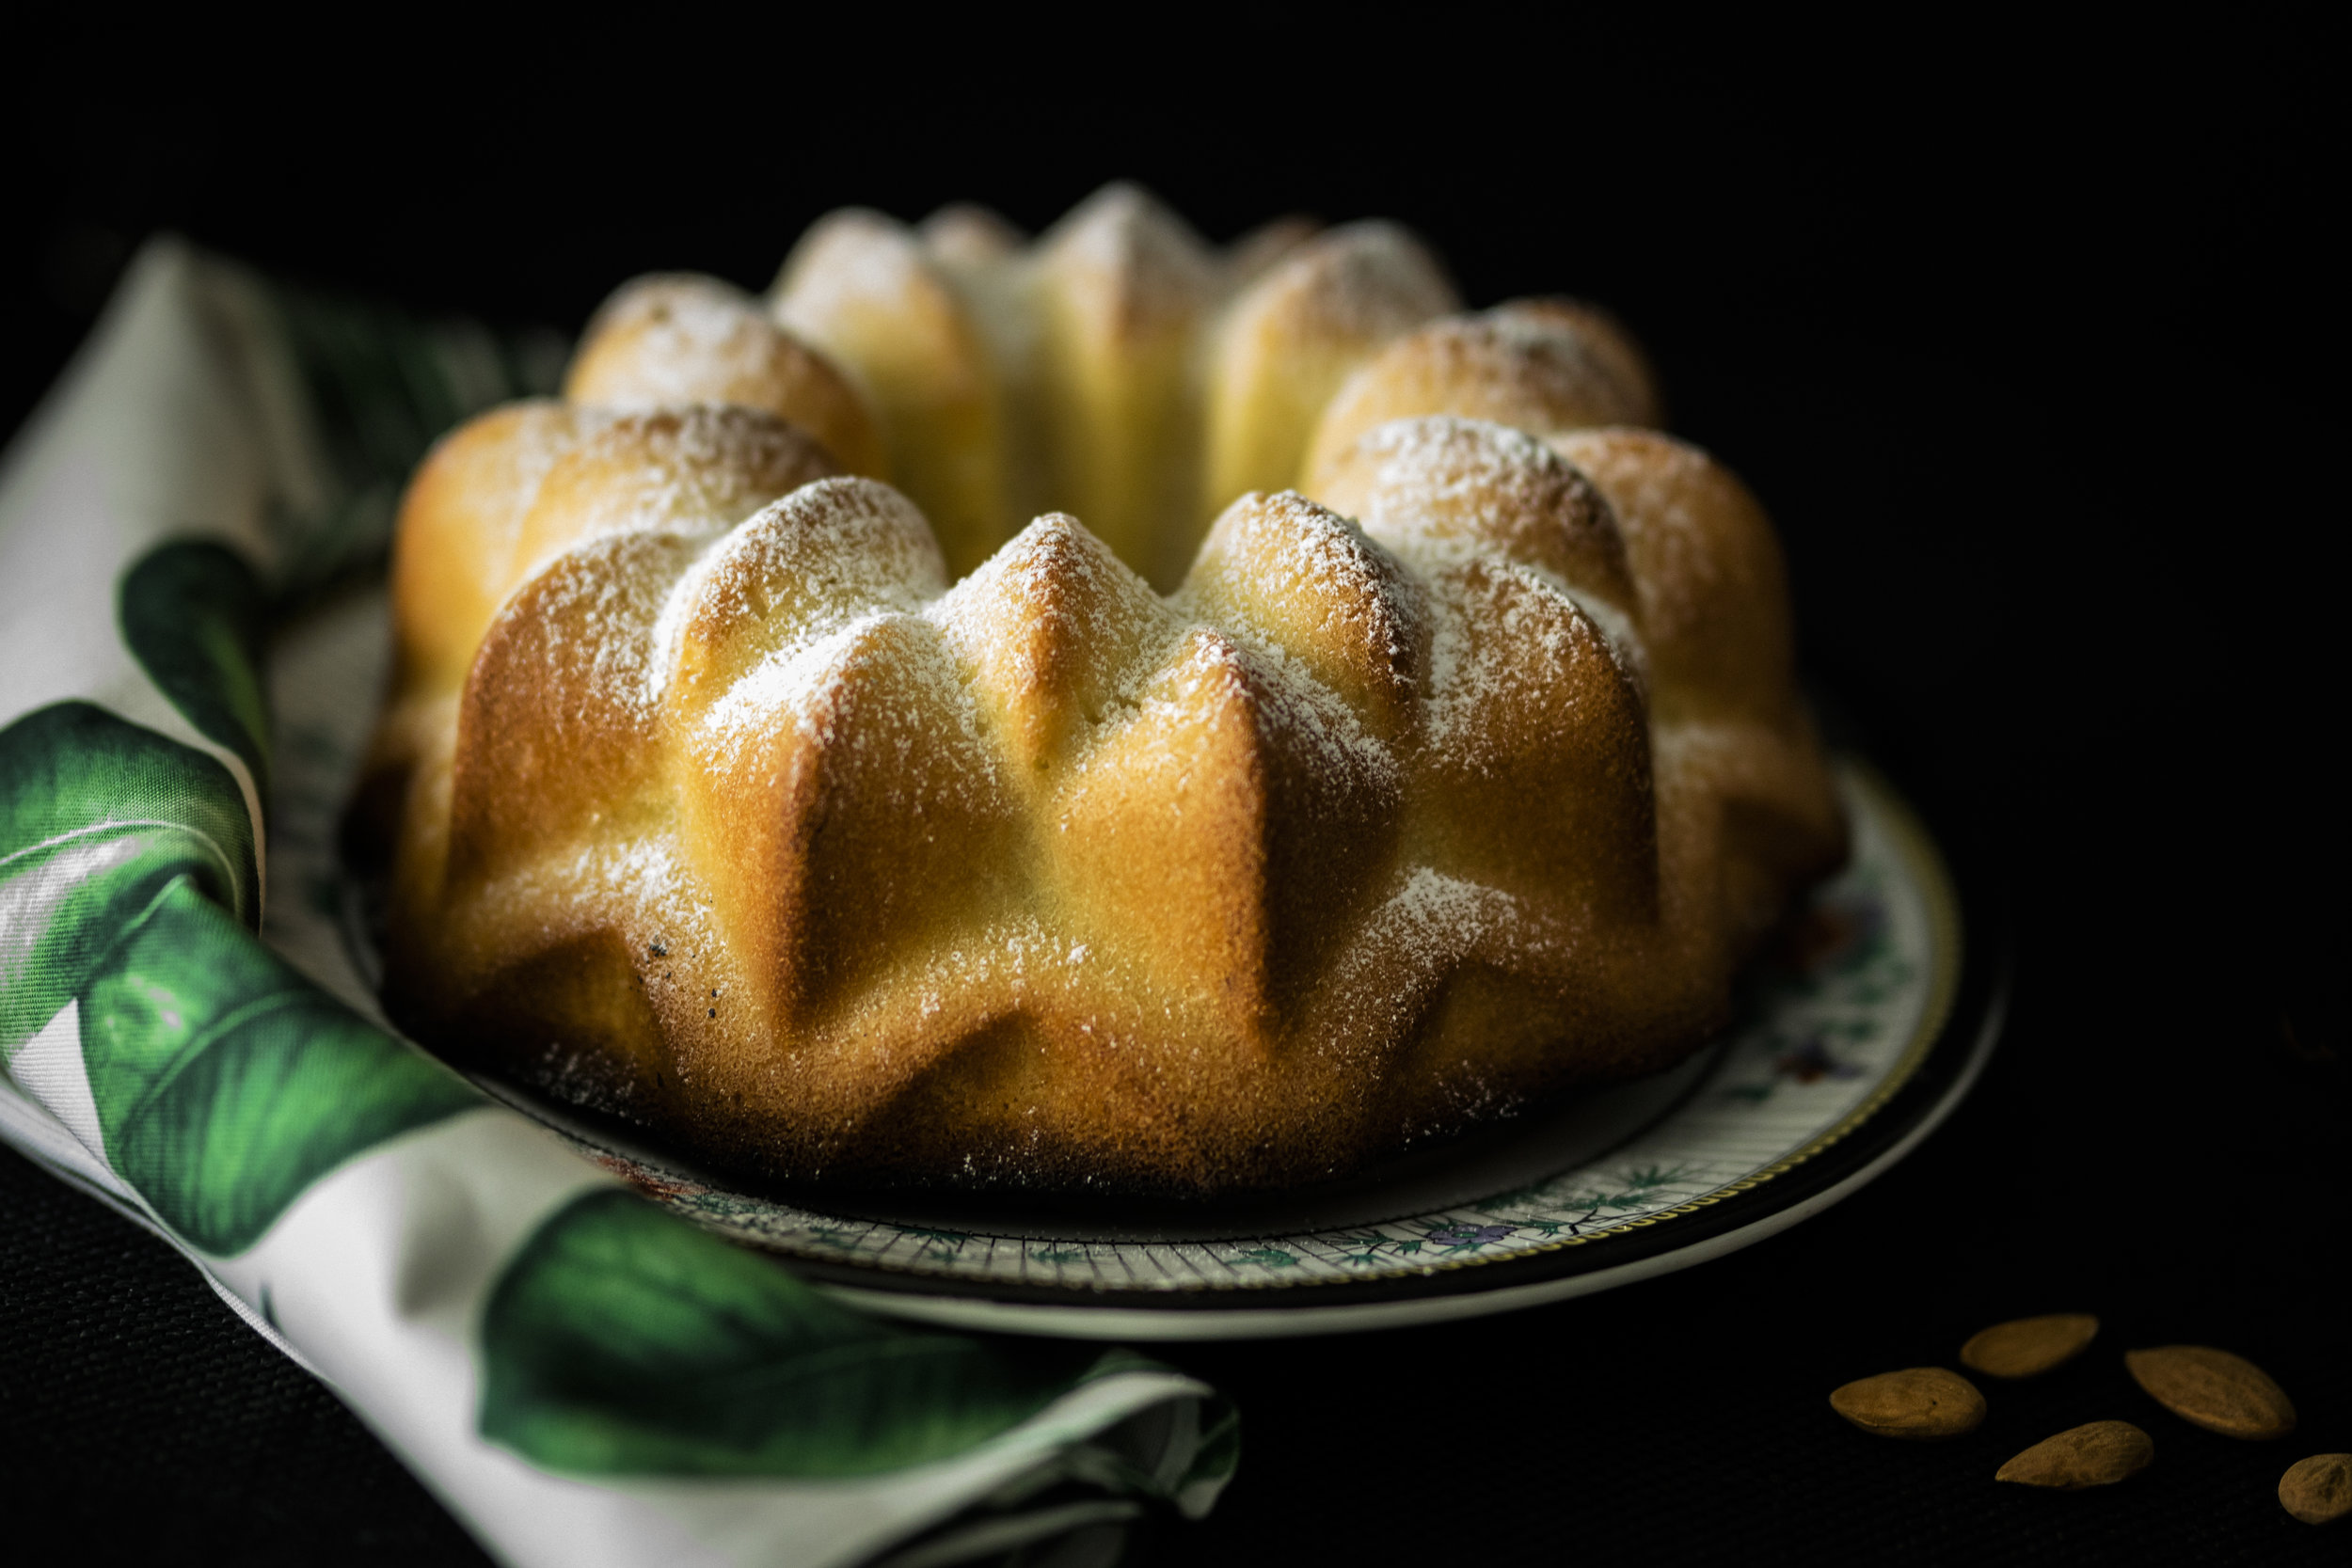 03 - Bergen has worked as a cake decorator and baker in the past. One of her most requested baked treats is a flourless chocolate cake or her avocado lime bundt cake.